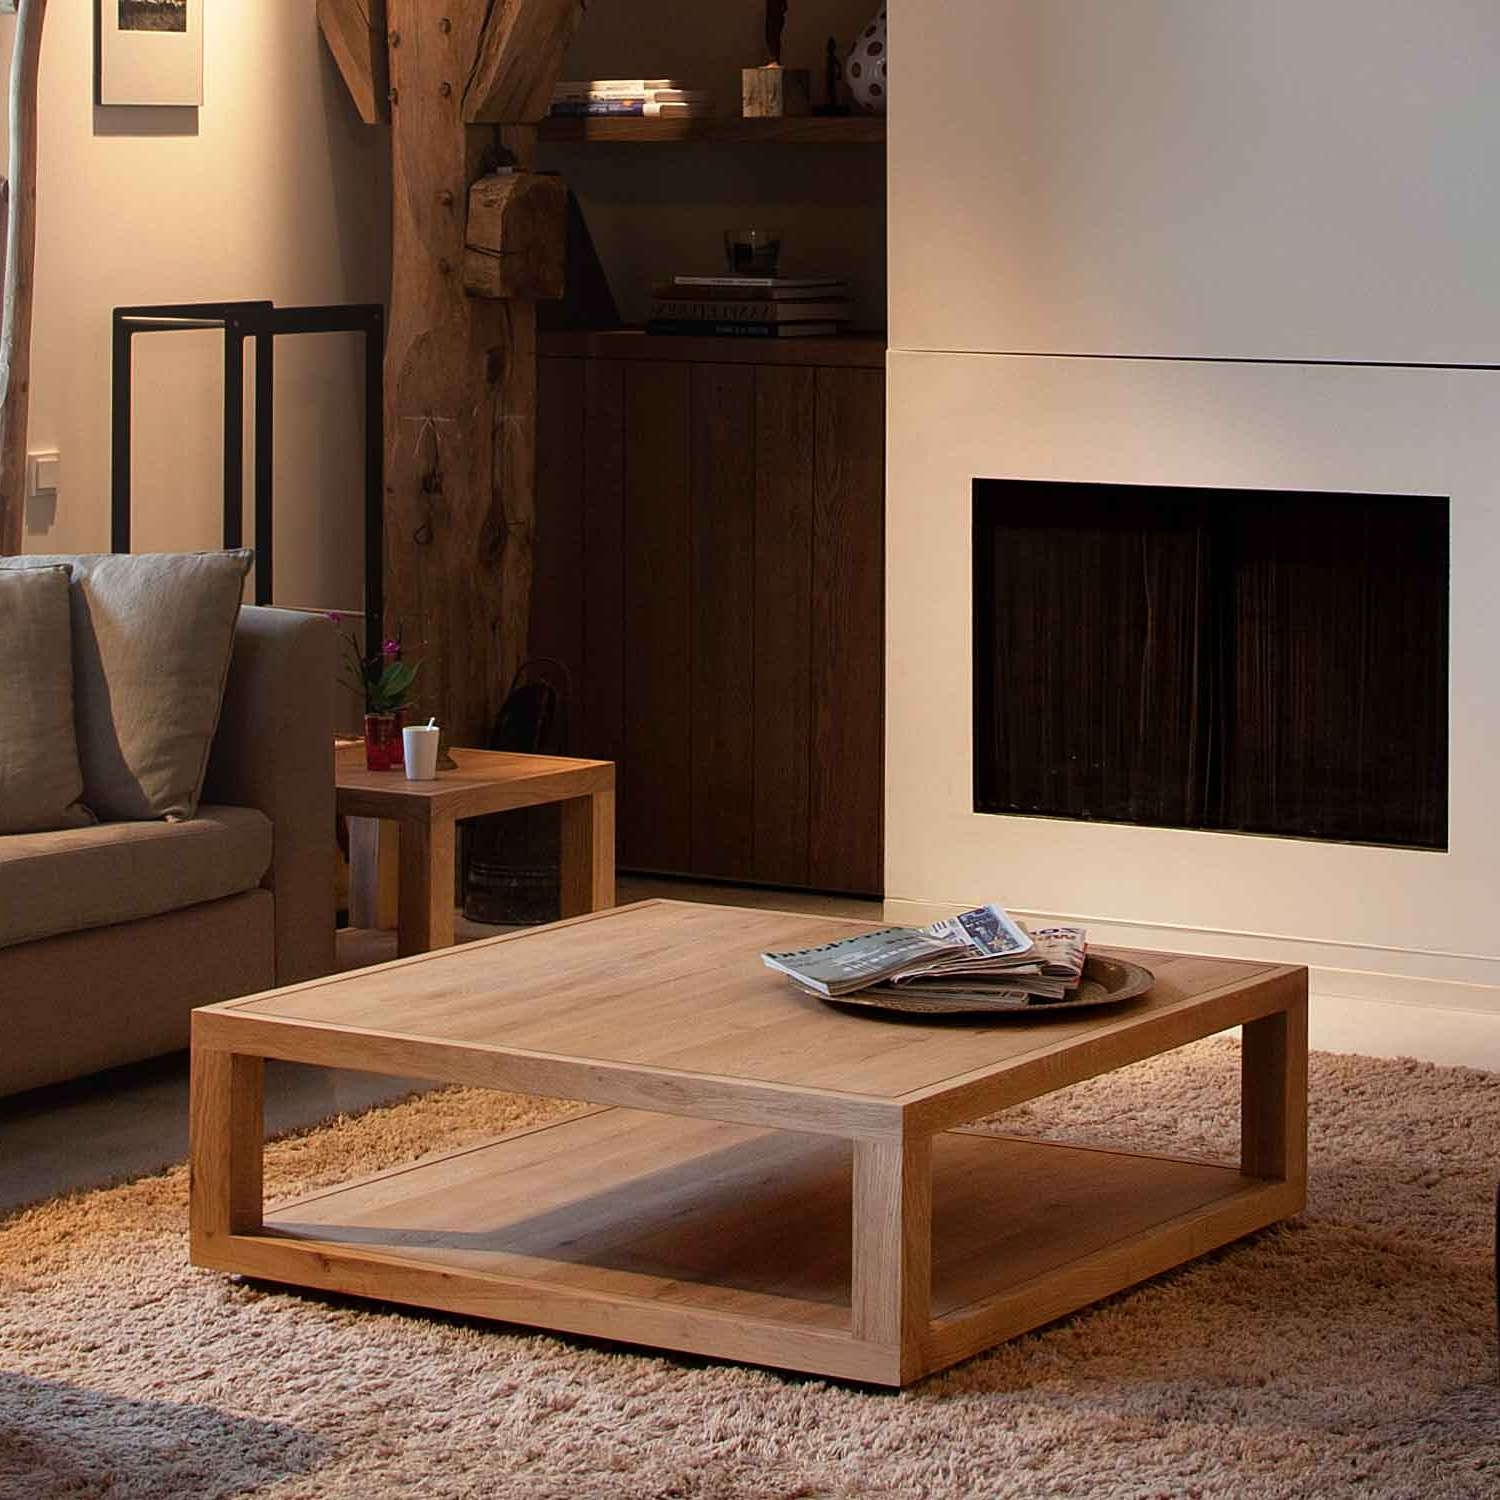 Custom Diy Low Square Wood Oak Coffee Table With Tray And With Preferred Low Coffee Tables With Storage (View 6 of 20)